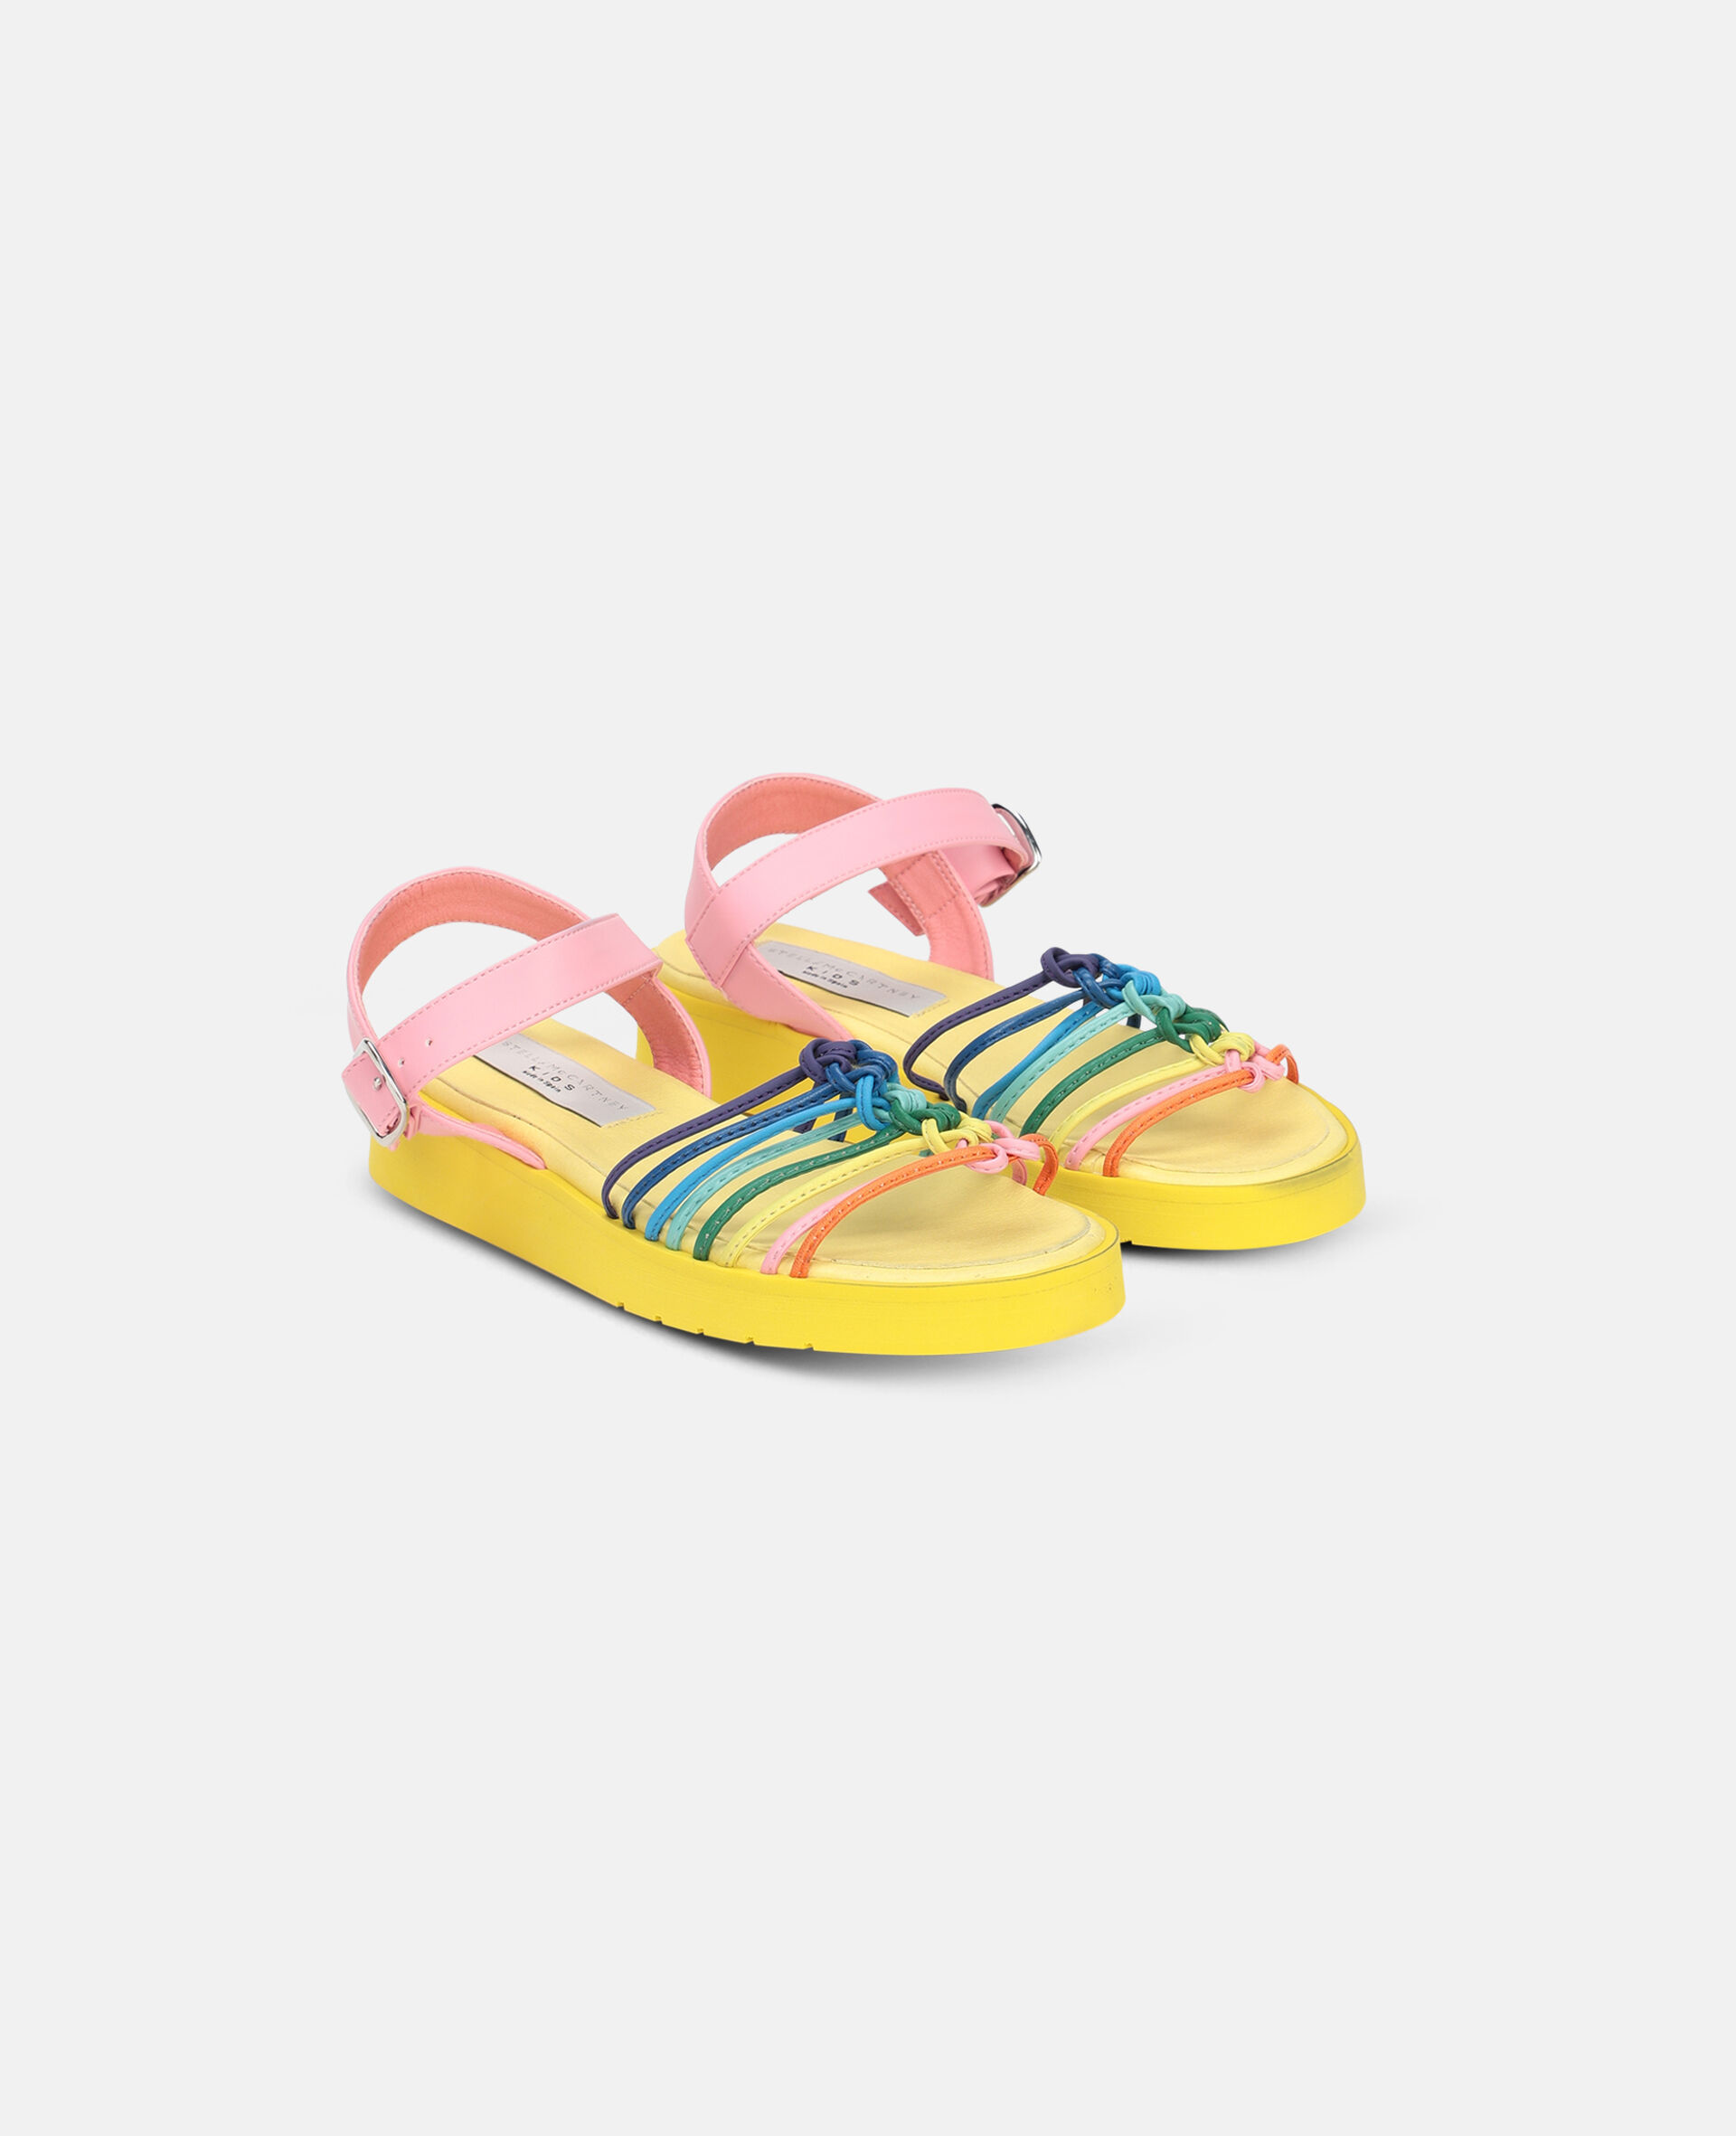 Multicolor Knotted Sandals -Multicoloured-large image number 3